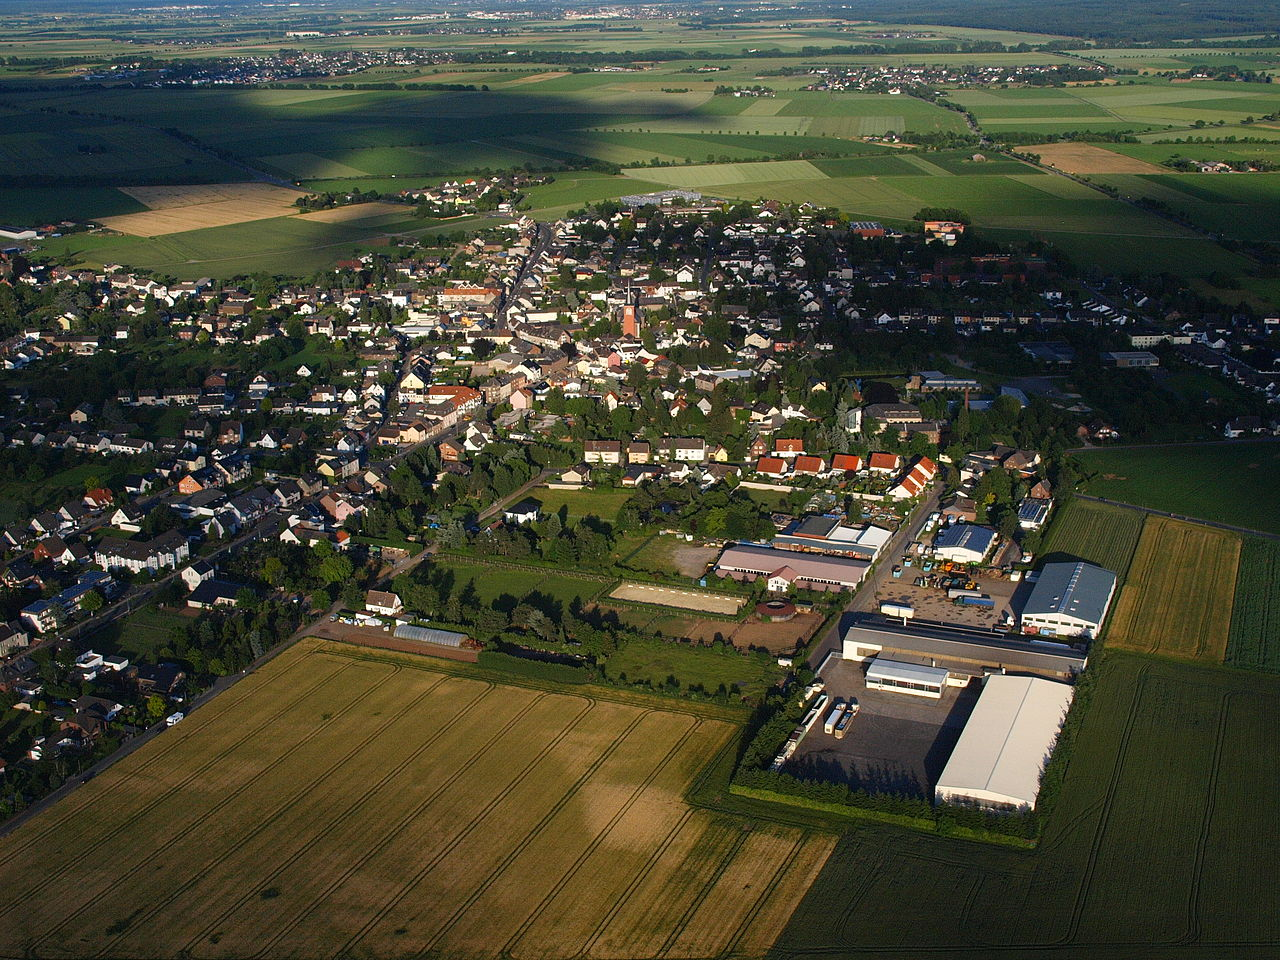 Single euskirchen